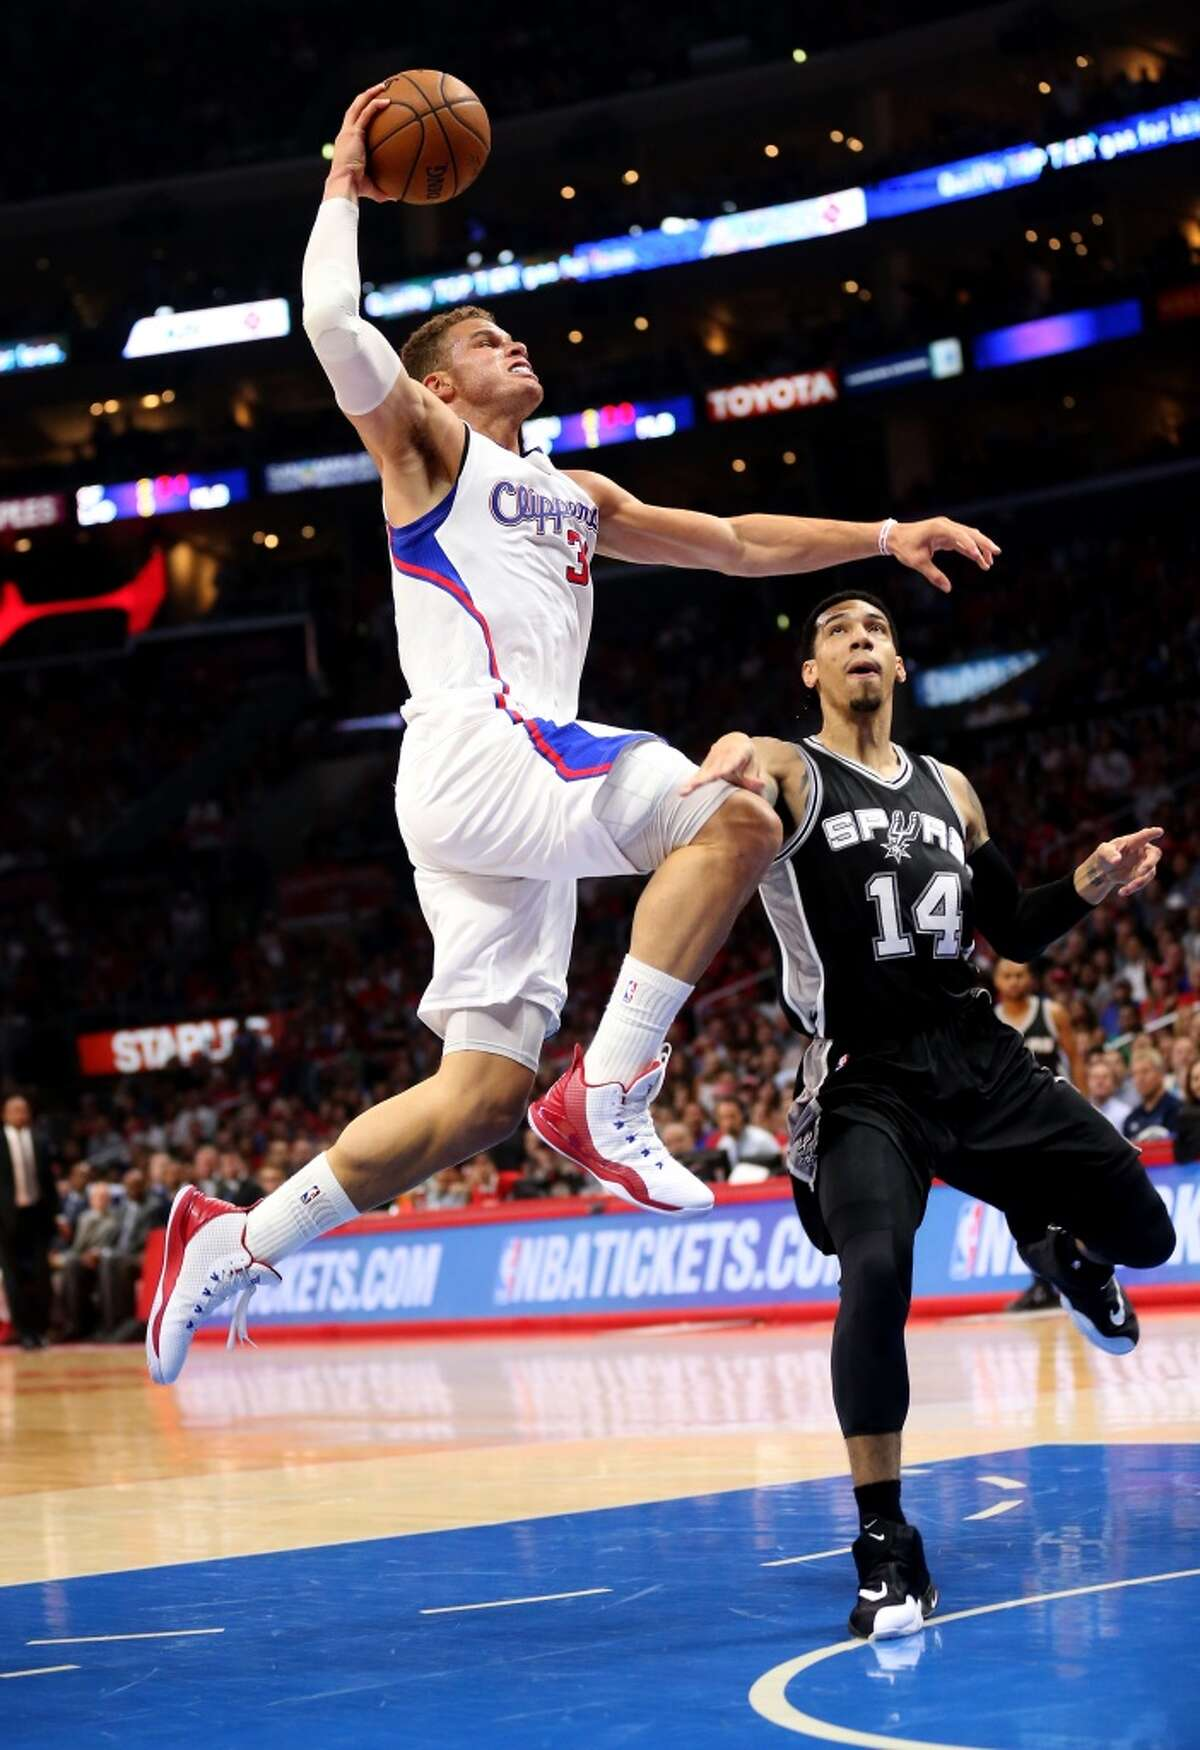 LOS ANGELES, CA - APRIL 28: Blake Griffin #32 of the Los Angeles Clippers dunks over Danny Green #14 of the San Antonio Spurs during Game Five of the Western Conference quarterfinals of the 2015 NBA Playoffs at Staples Center on April 28, 2015 in Los Angeles, California. NOTE TO USER: User expressly acknowledges and agrees that, by downloading and or using this photograph, User is consenting to the terms and conditions of the Getty Images License Agreement. (Photo by Stephen Dunn/Getty Images)